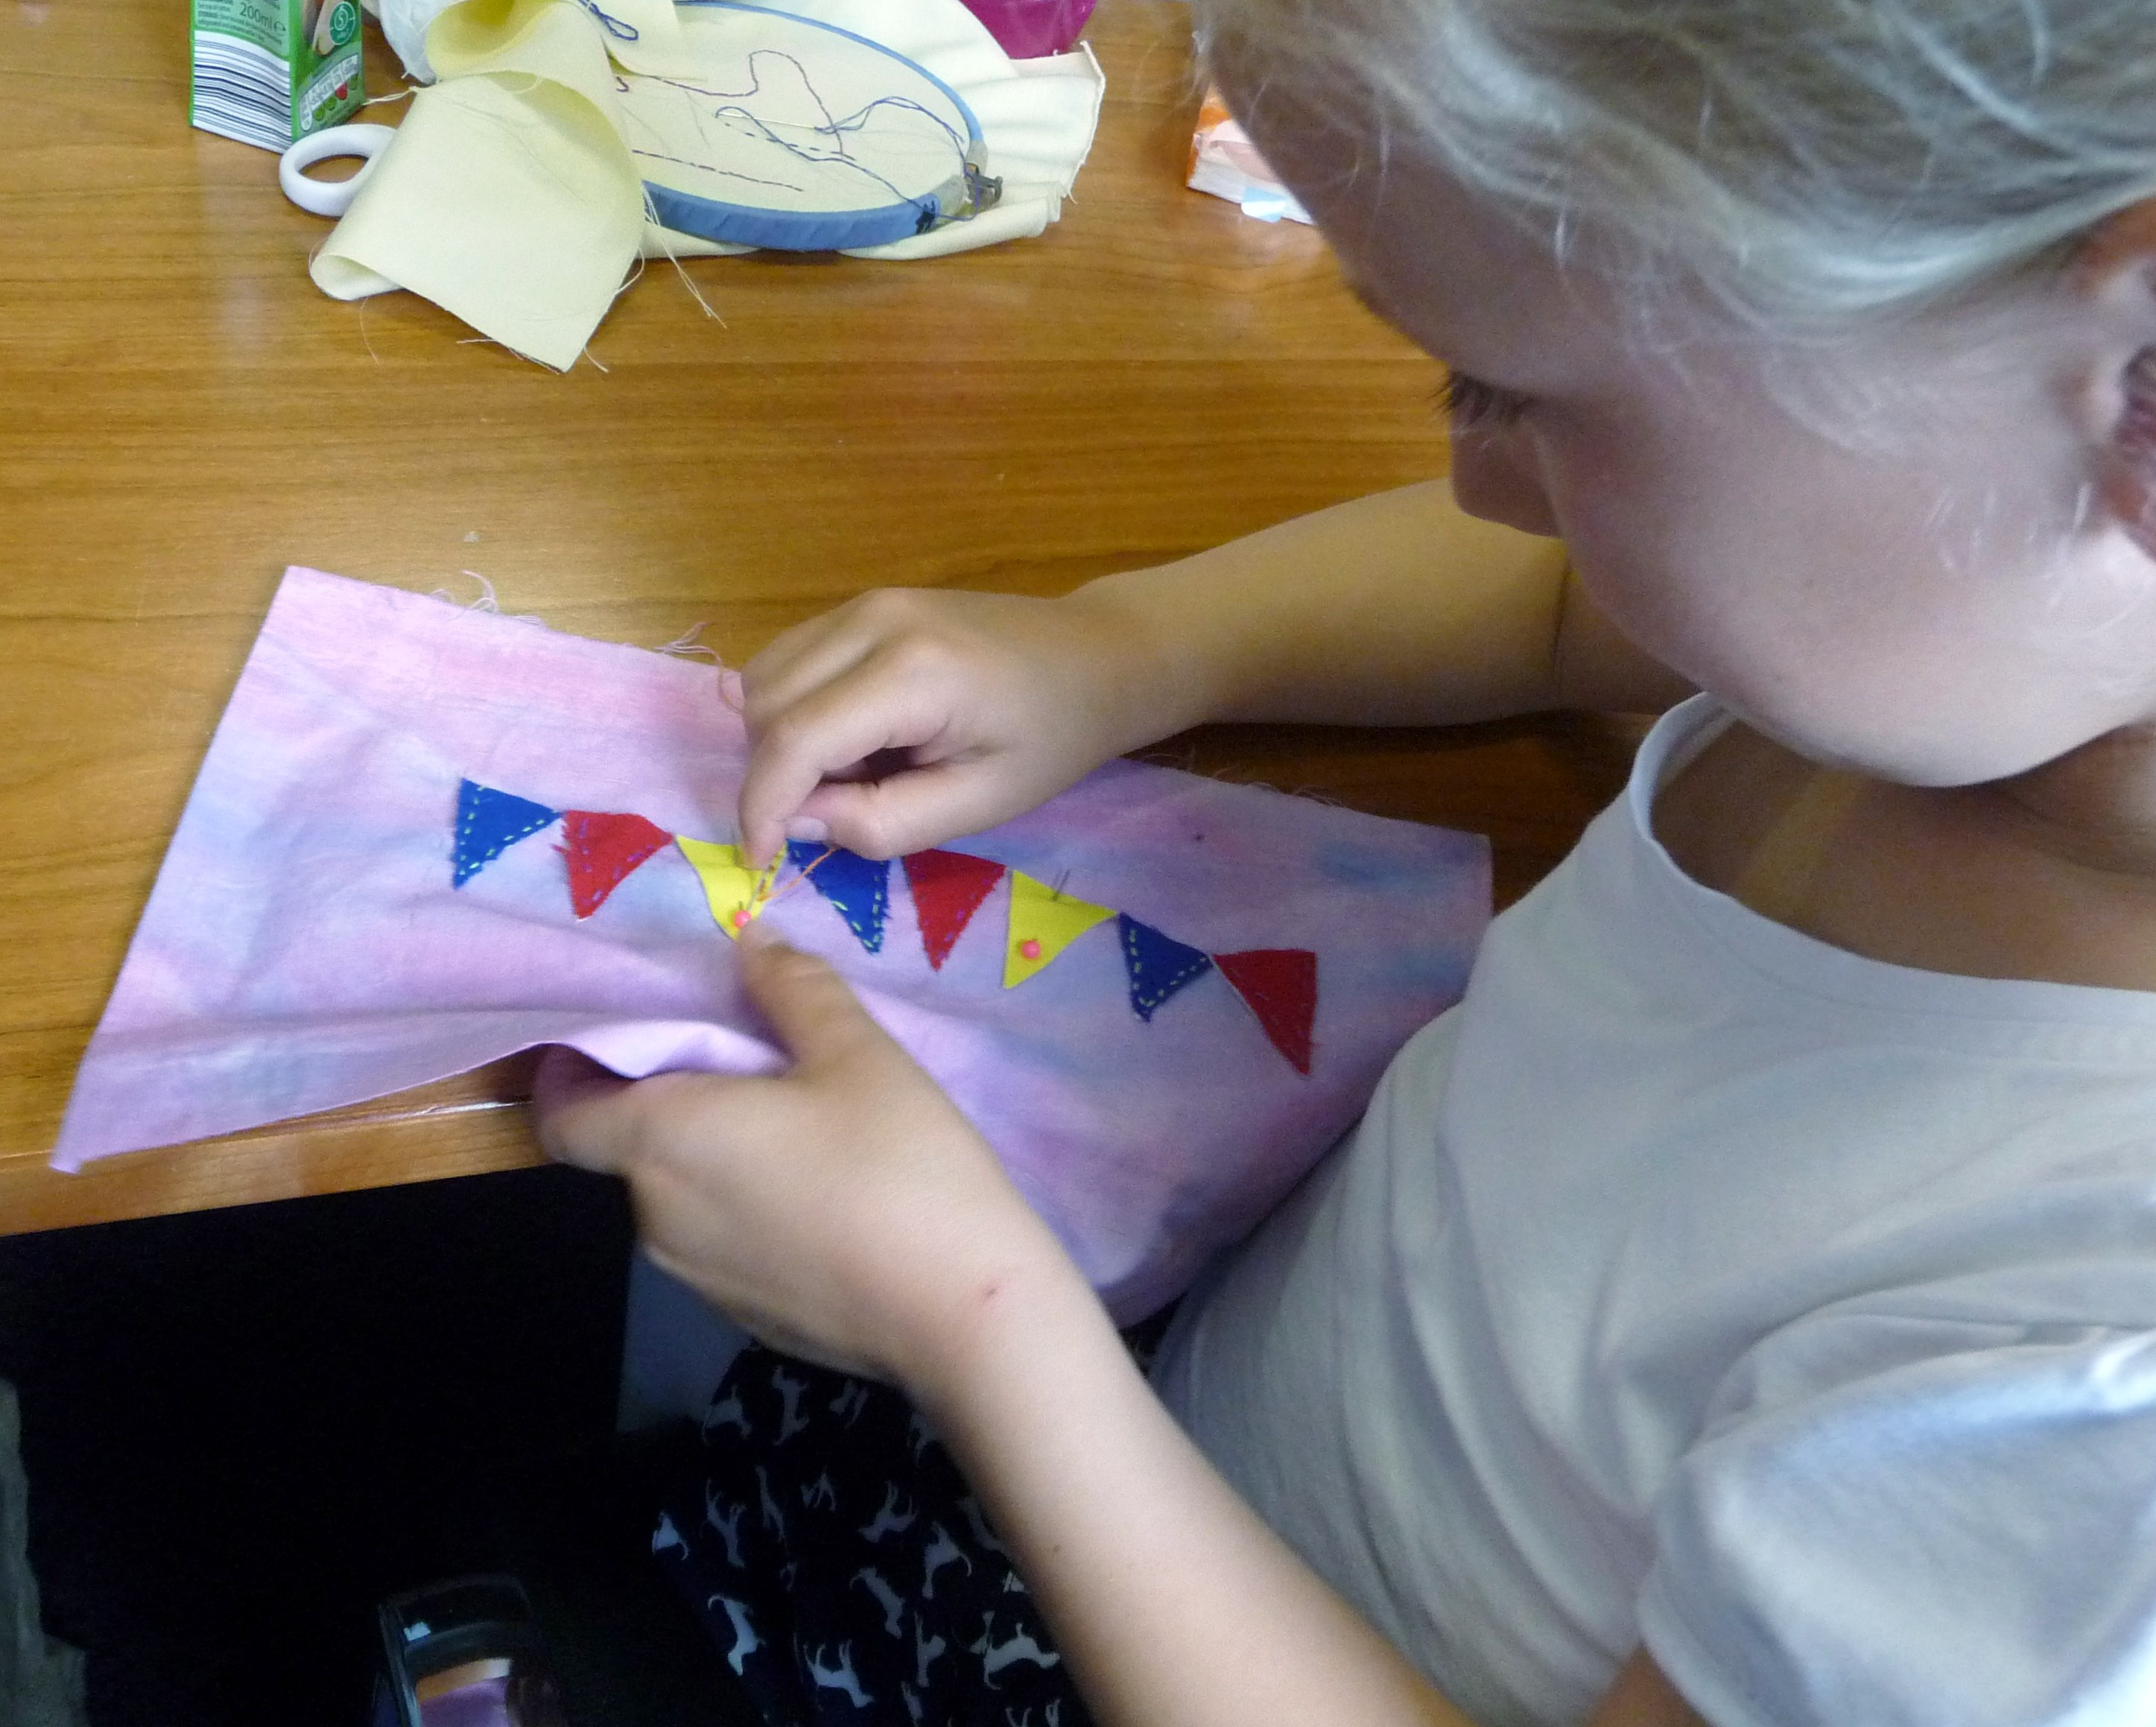 our youngest member, Esther, is working on MEG YE's joint project for our 60th Anniversary exhibition to be held in 2016